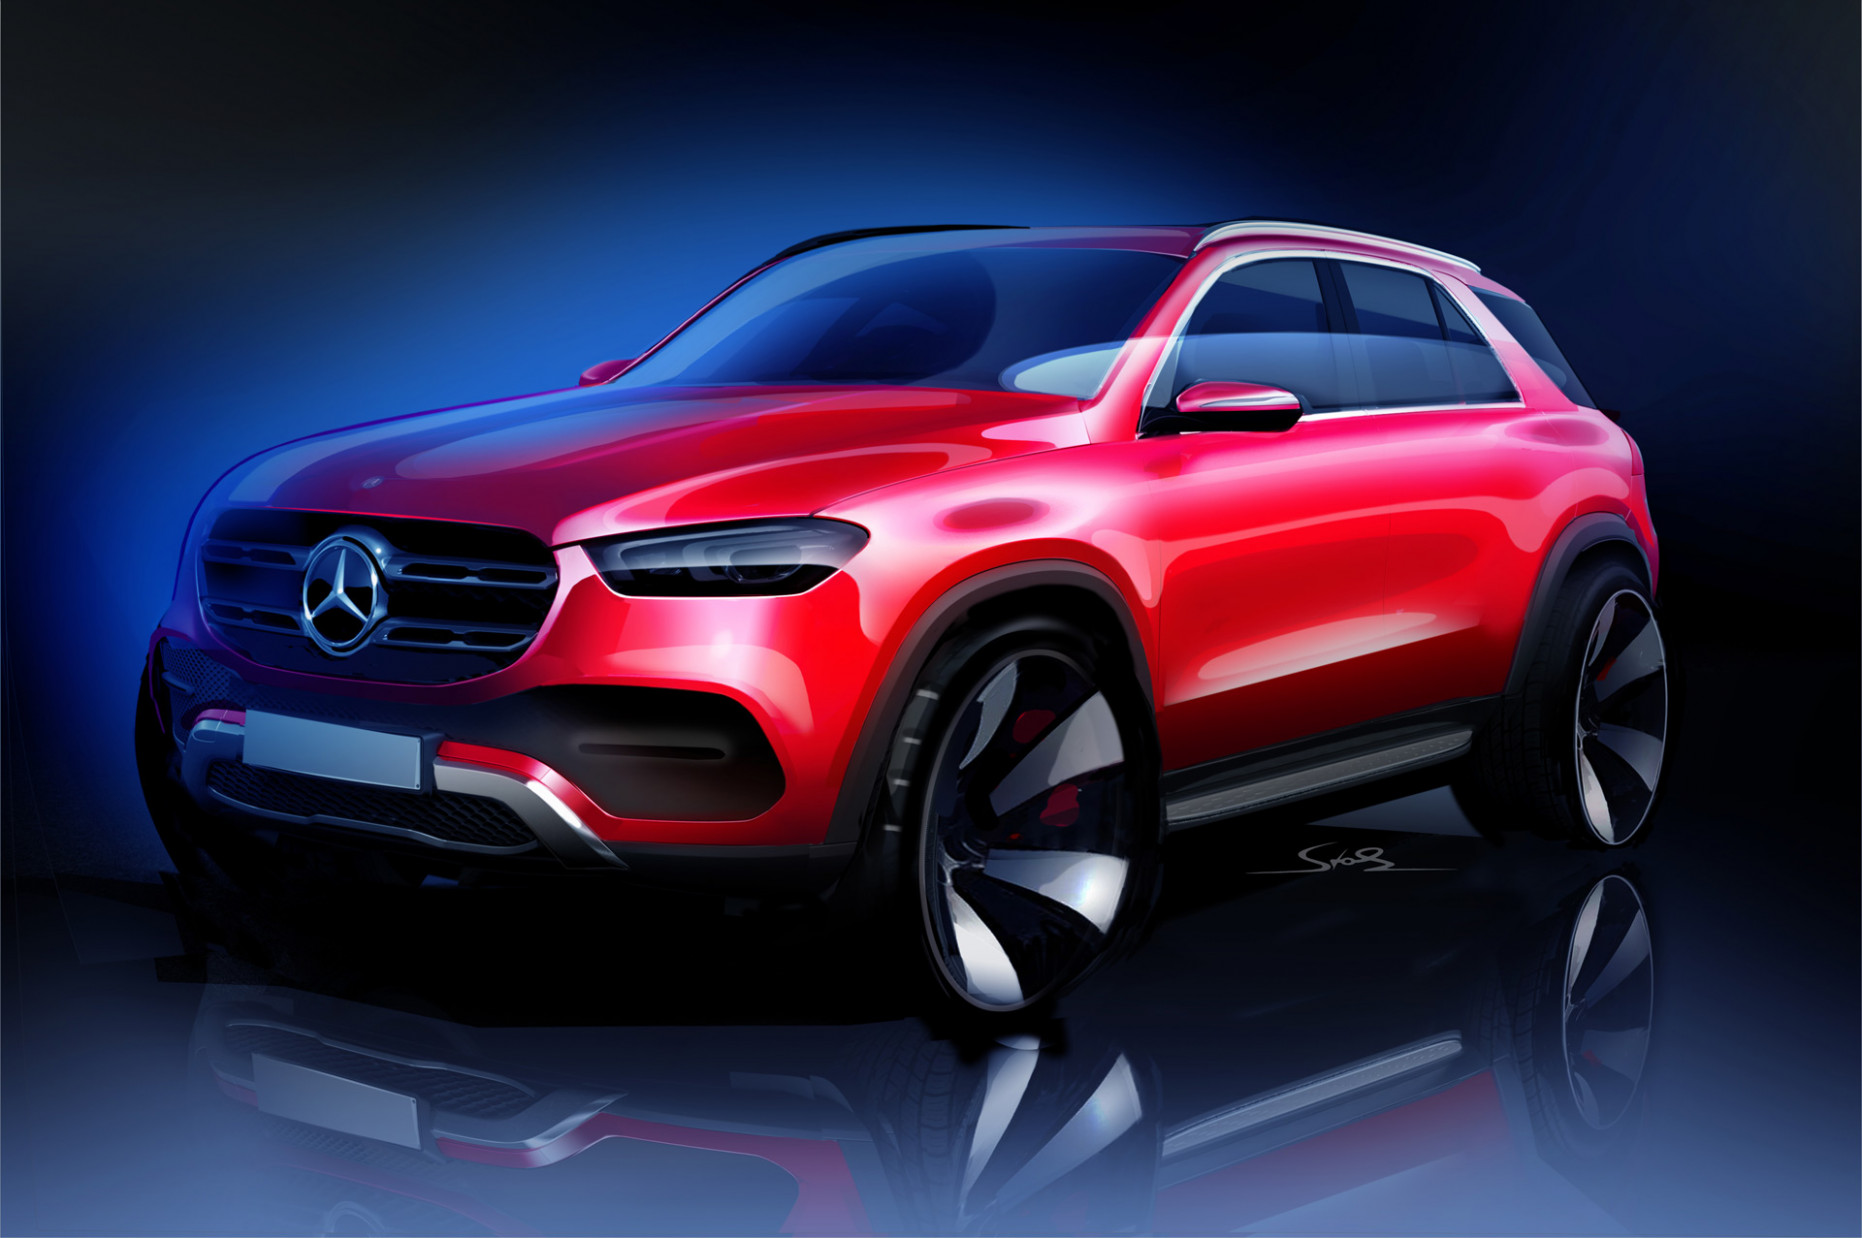 Mercedes-Benz teases 11 GLE luxury SUV - 2020 mercedes uk